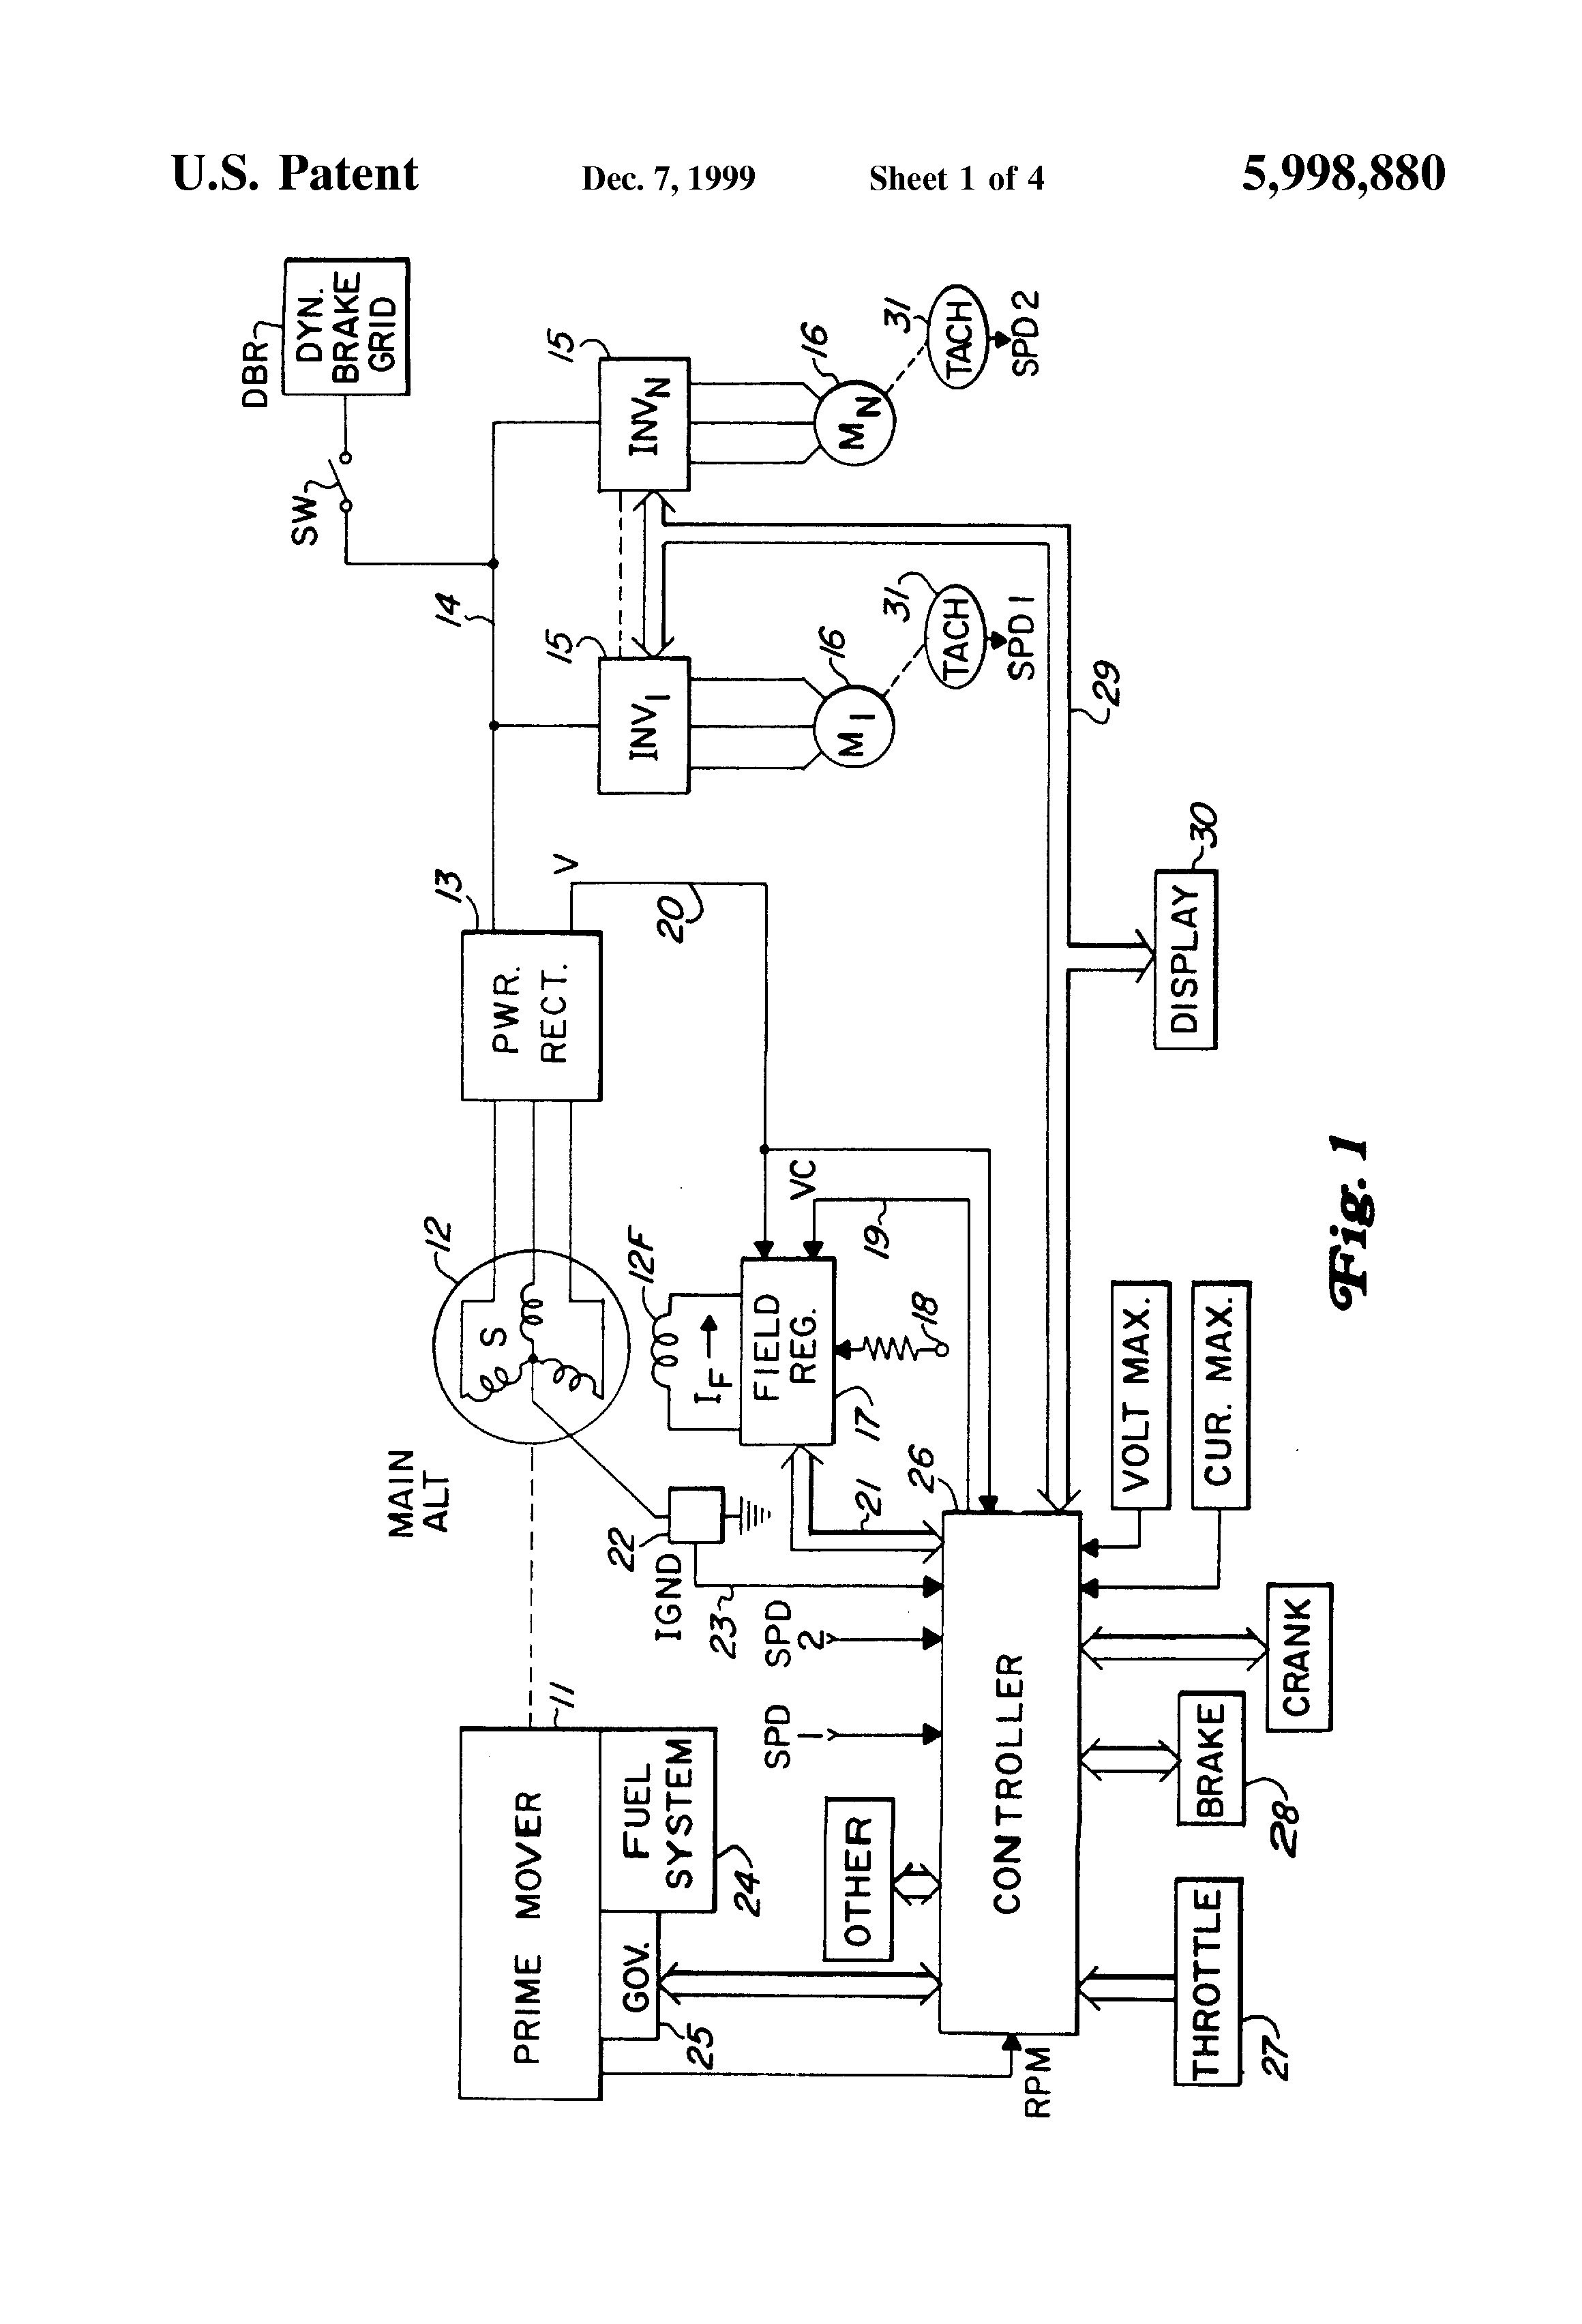 Brake Motor Wiring 480 Diagram For You All House With 480v Sew Rxf87drn160l4 Rh Mollusksurfshopnyc Com